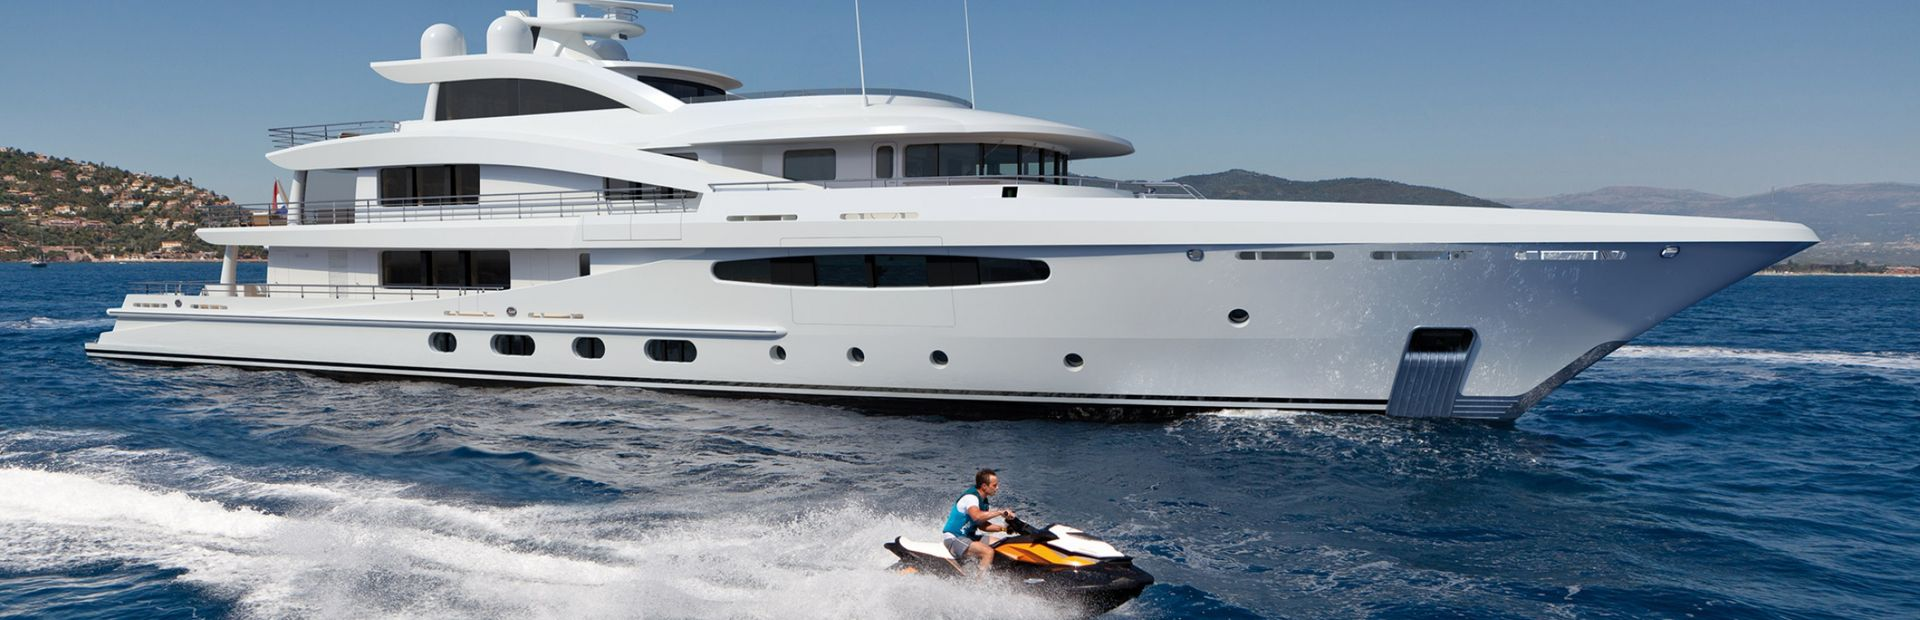 Amels 188 Yacht Charter